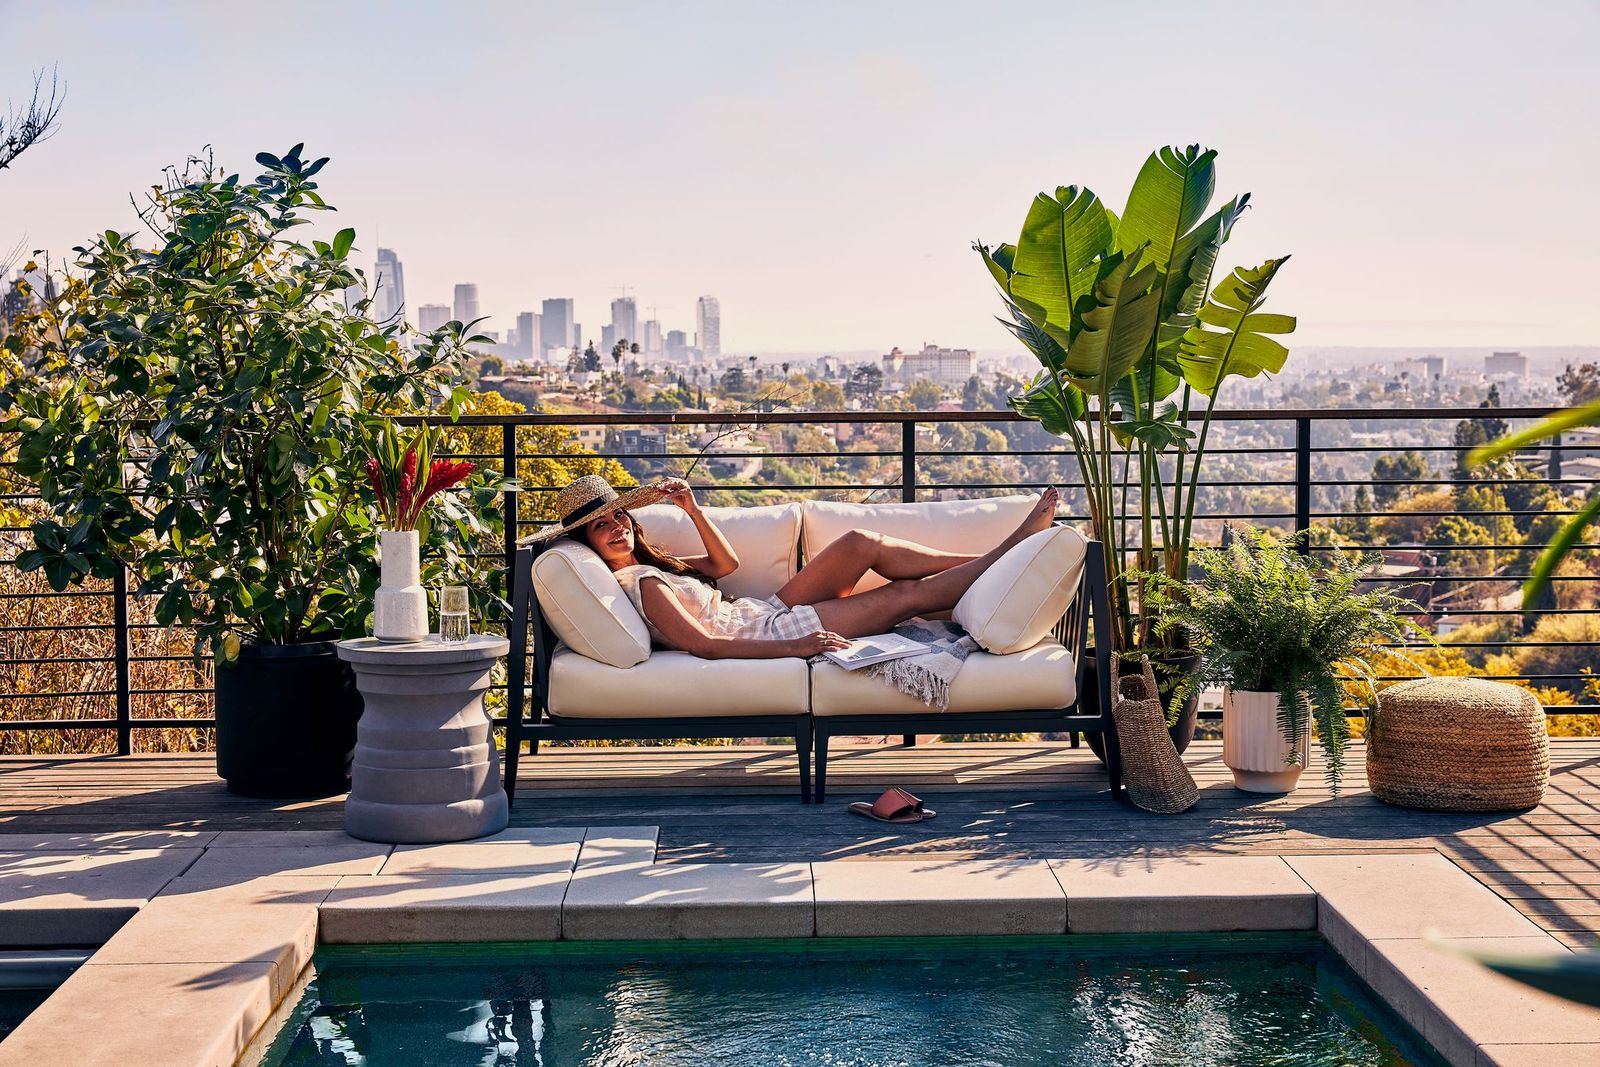 Woman lounging by the pool on aluminum outdoor furniture